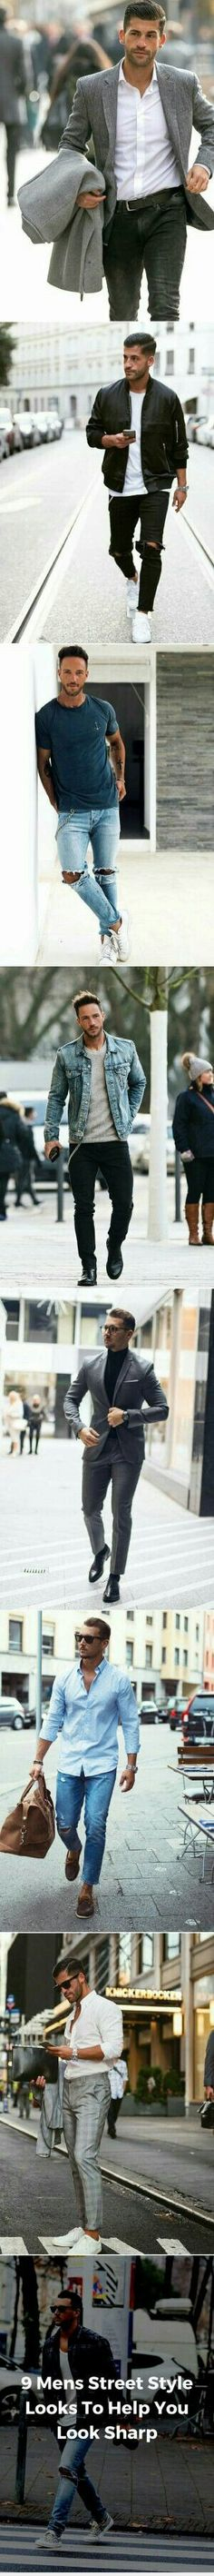 Coolest Everyday Outfits For Men. Simple Outfit Ideas For Men.